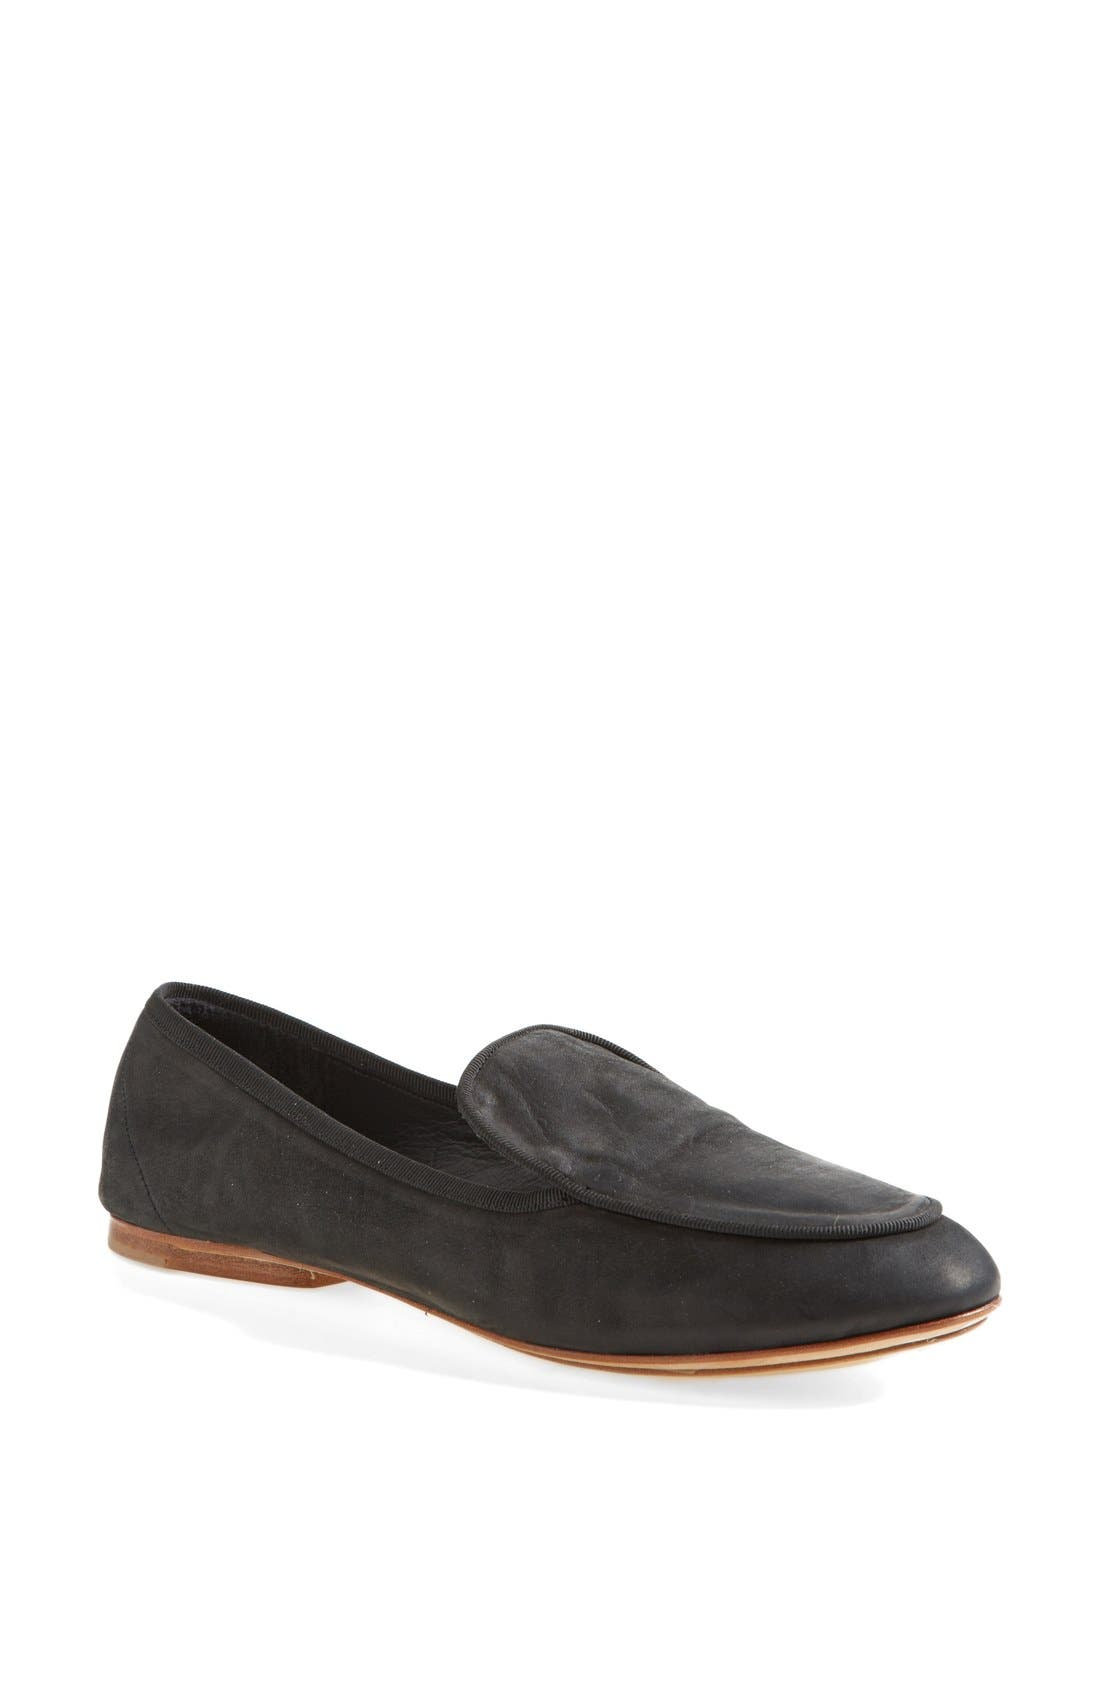 Main Image - rag & bone 'Beeman' Loafer Flat